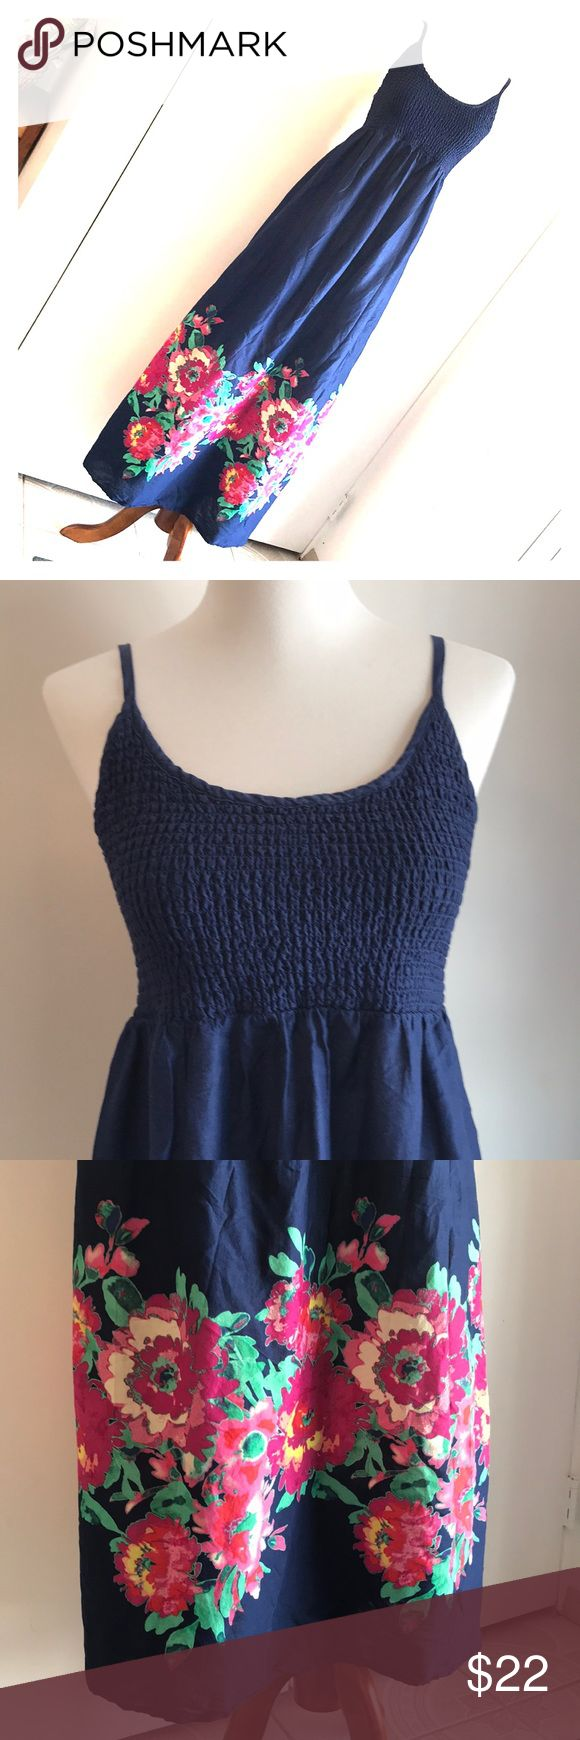 Old navy Maternity dress Worn once perfect condition. Adjustable straps. Old Navy Dresses Maxi